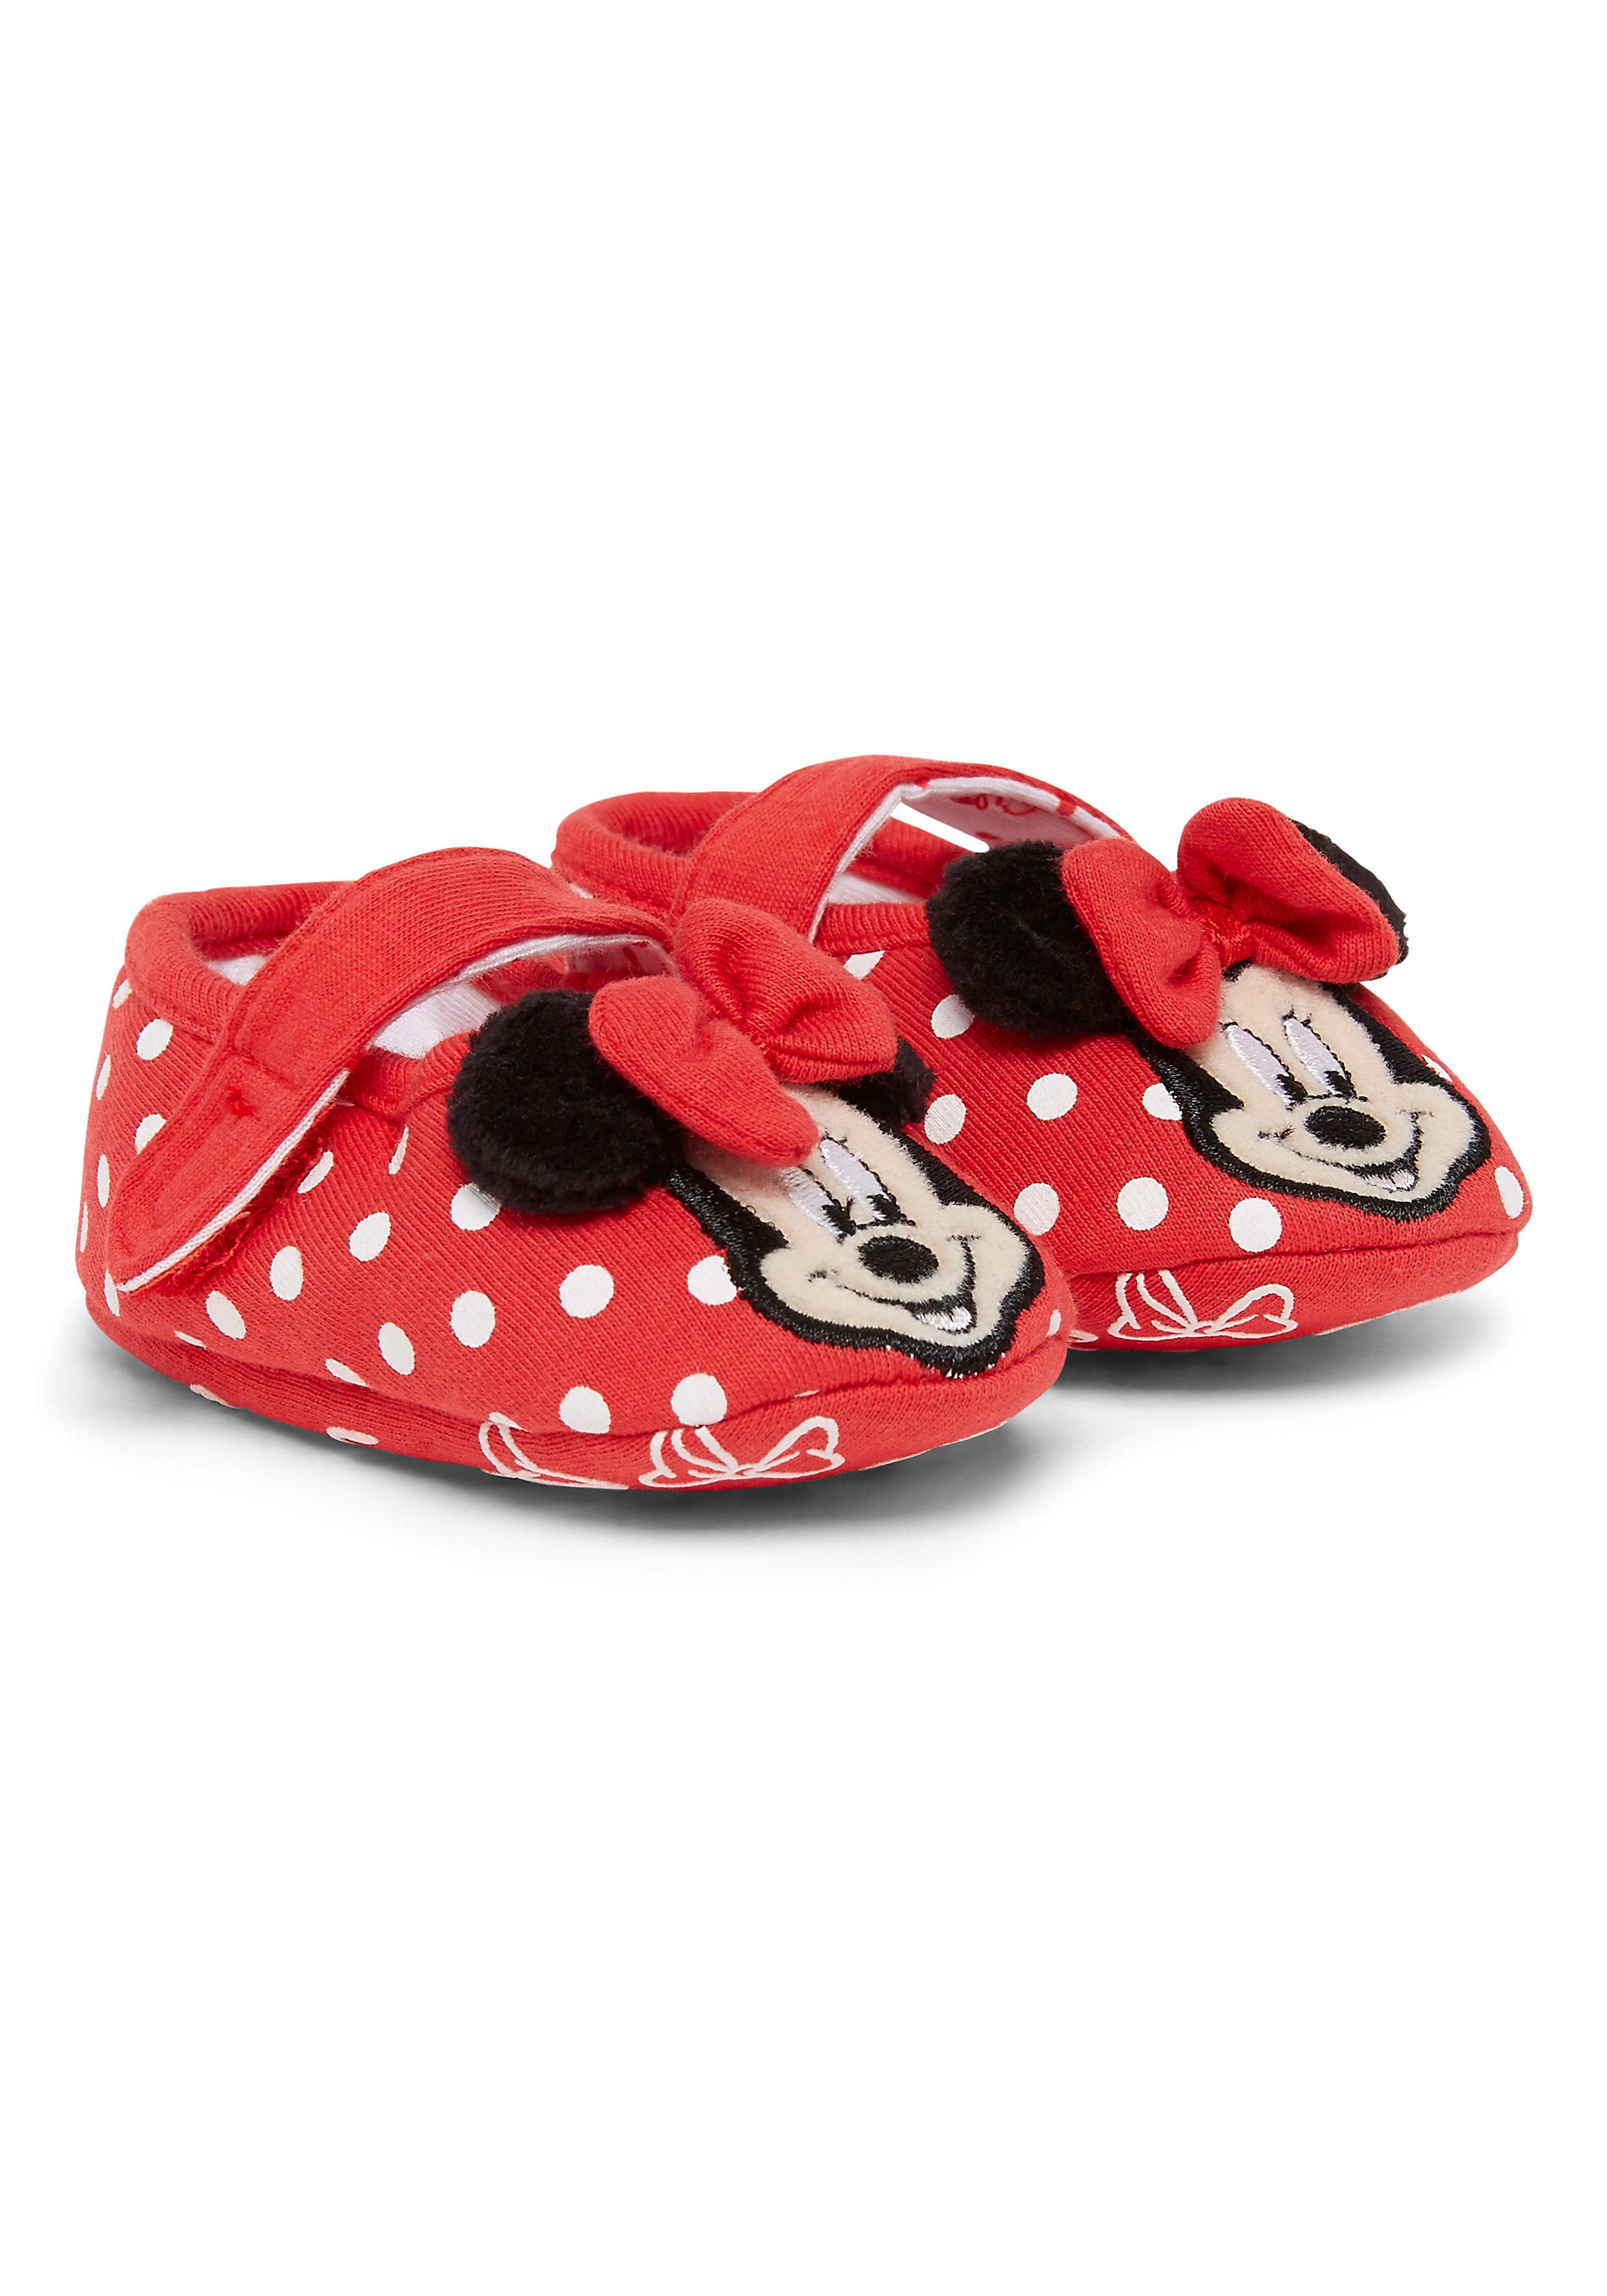 Mothercare | Girls Booties Disney Minnie Mouse - Red